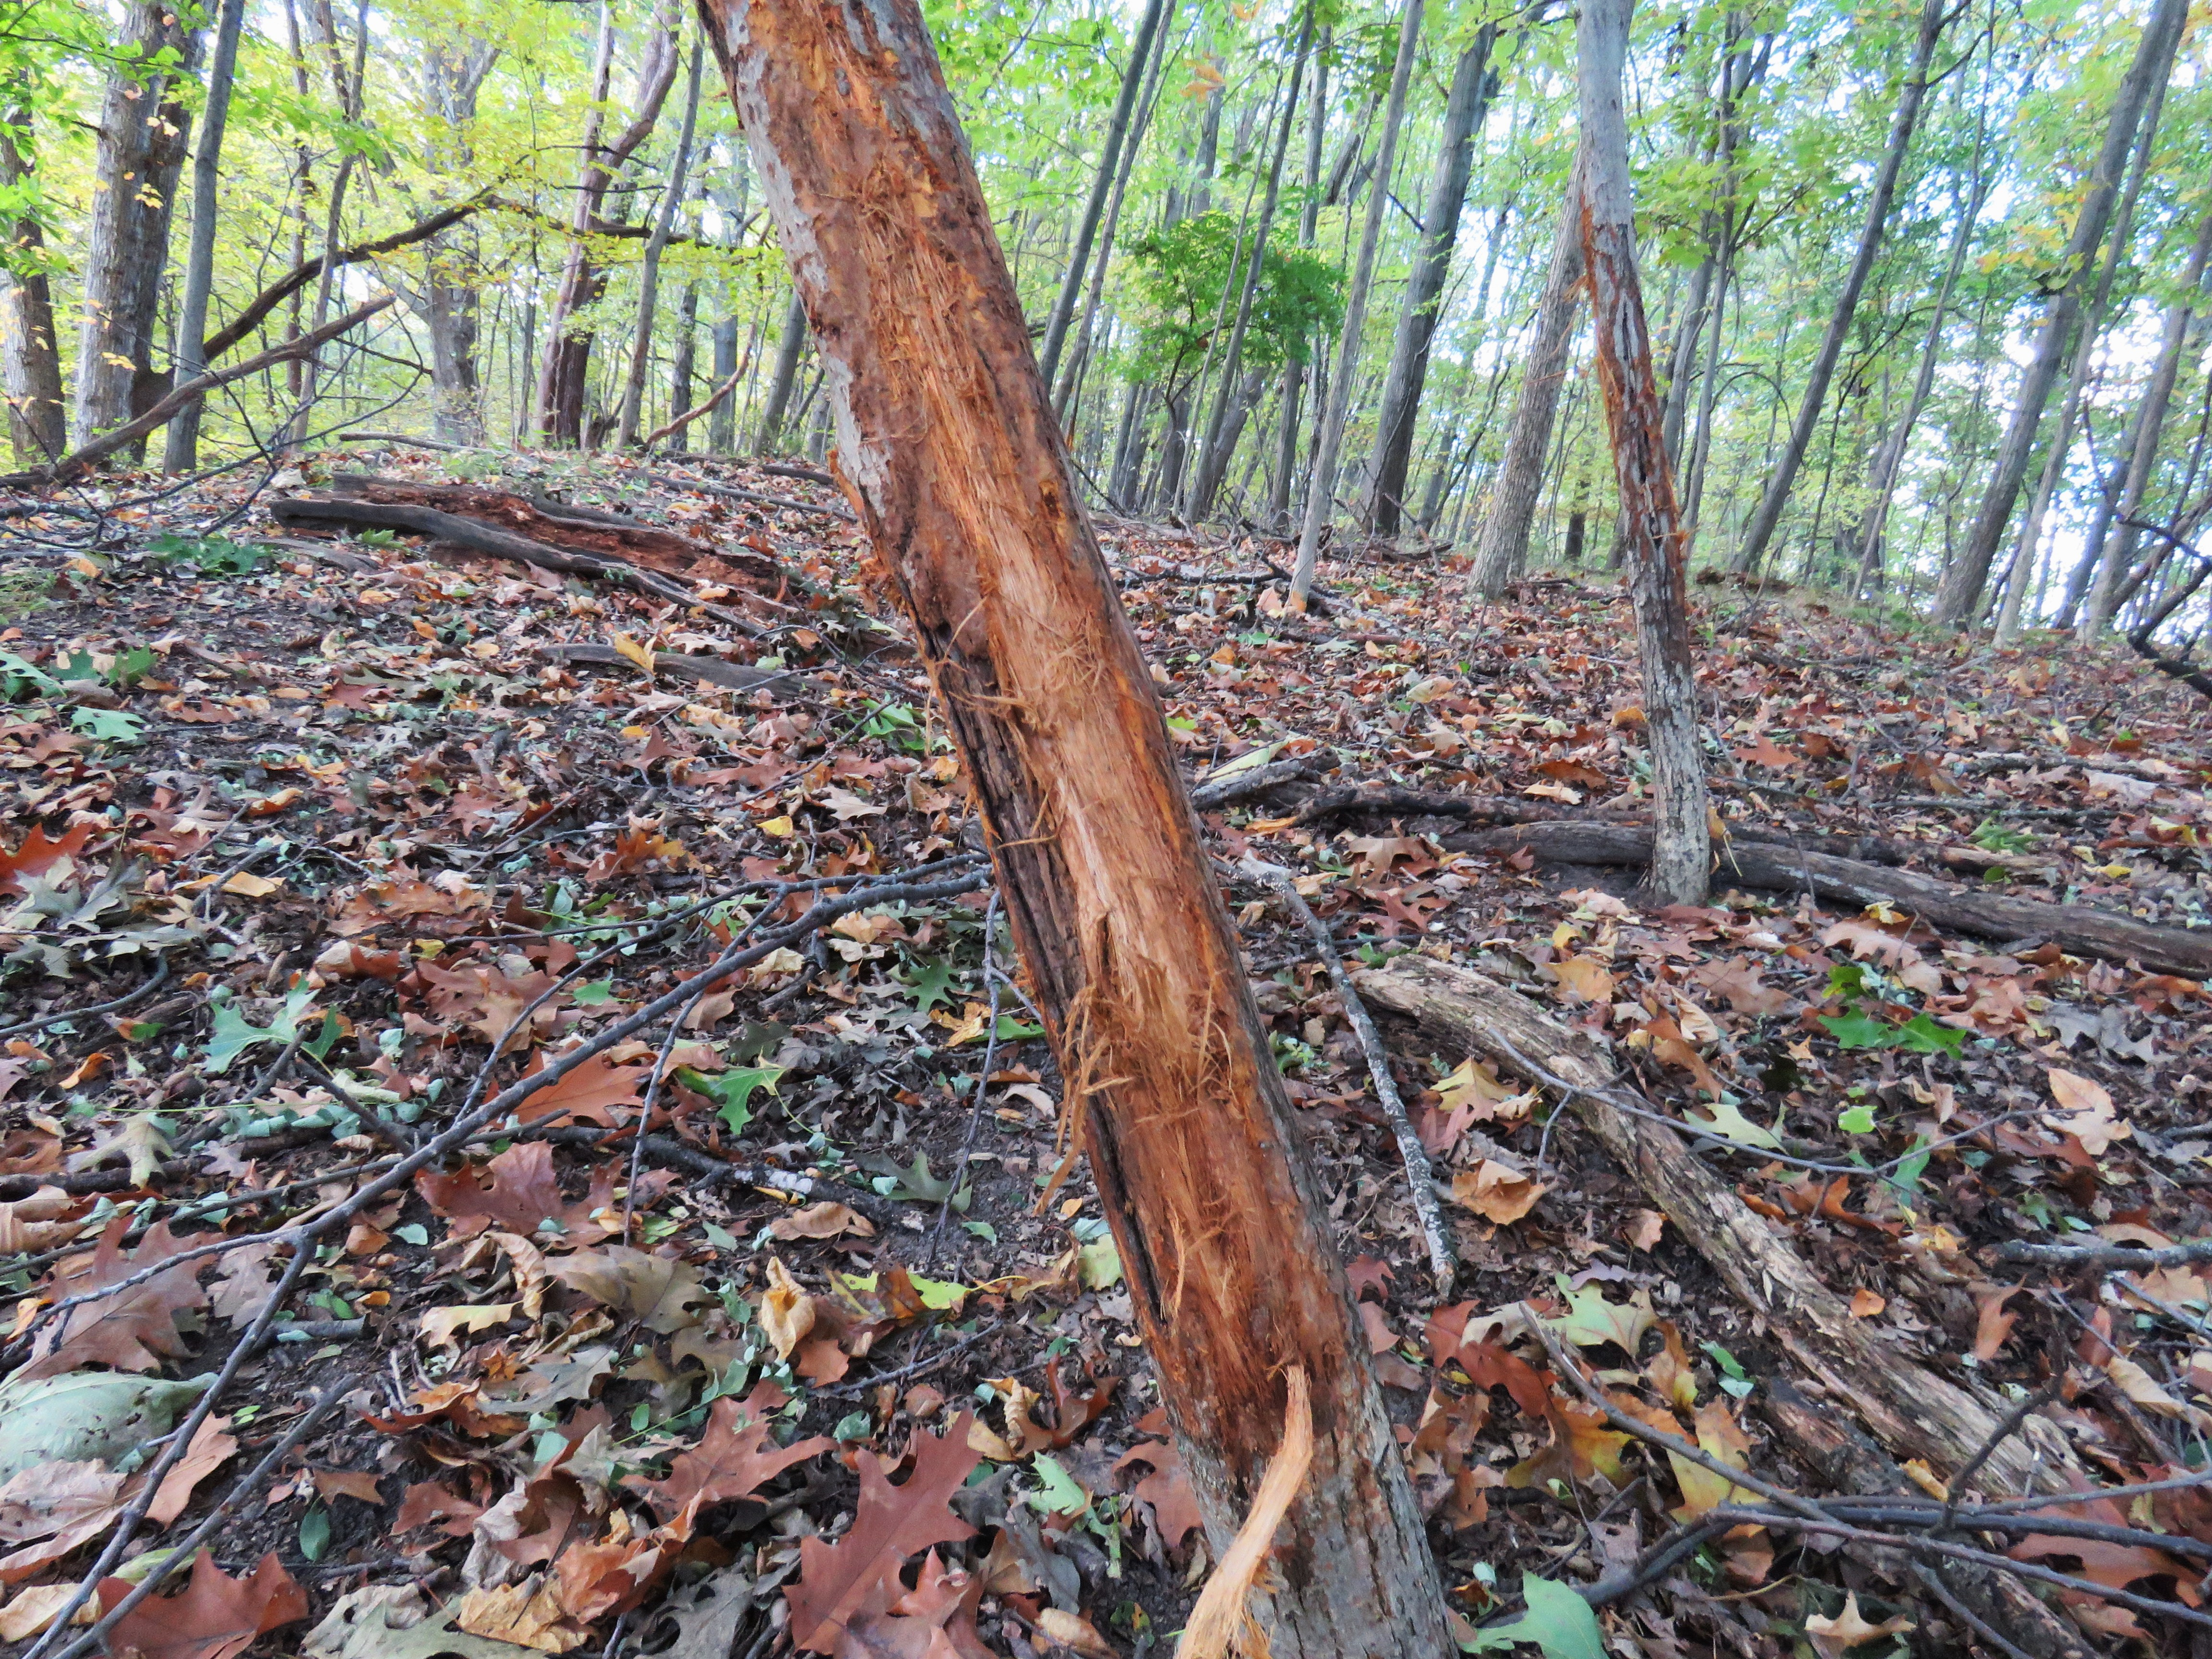 A young tree in a wooded area showing evidence of buck rub: bark that has been scraped off by a buck's antlers